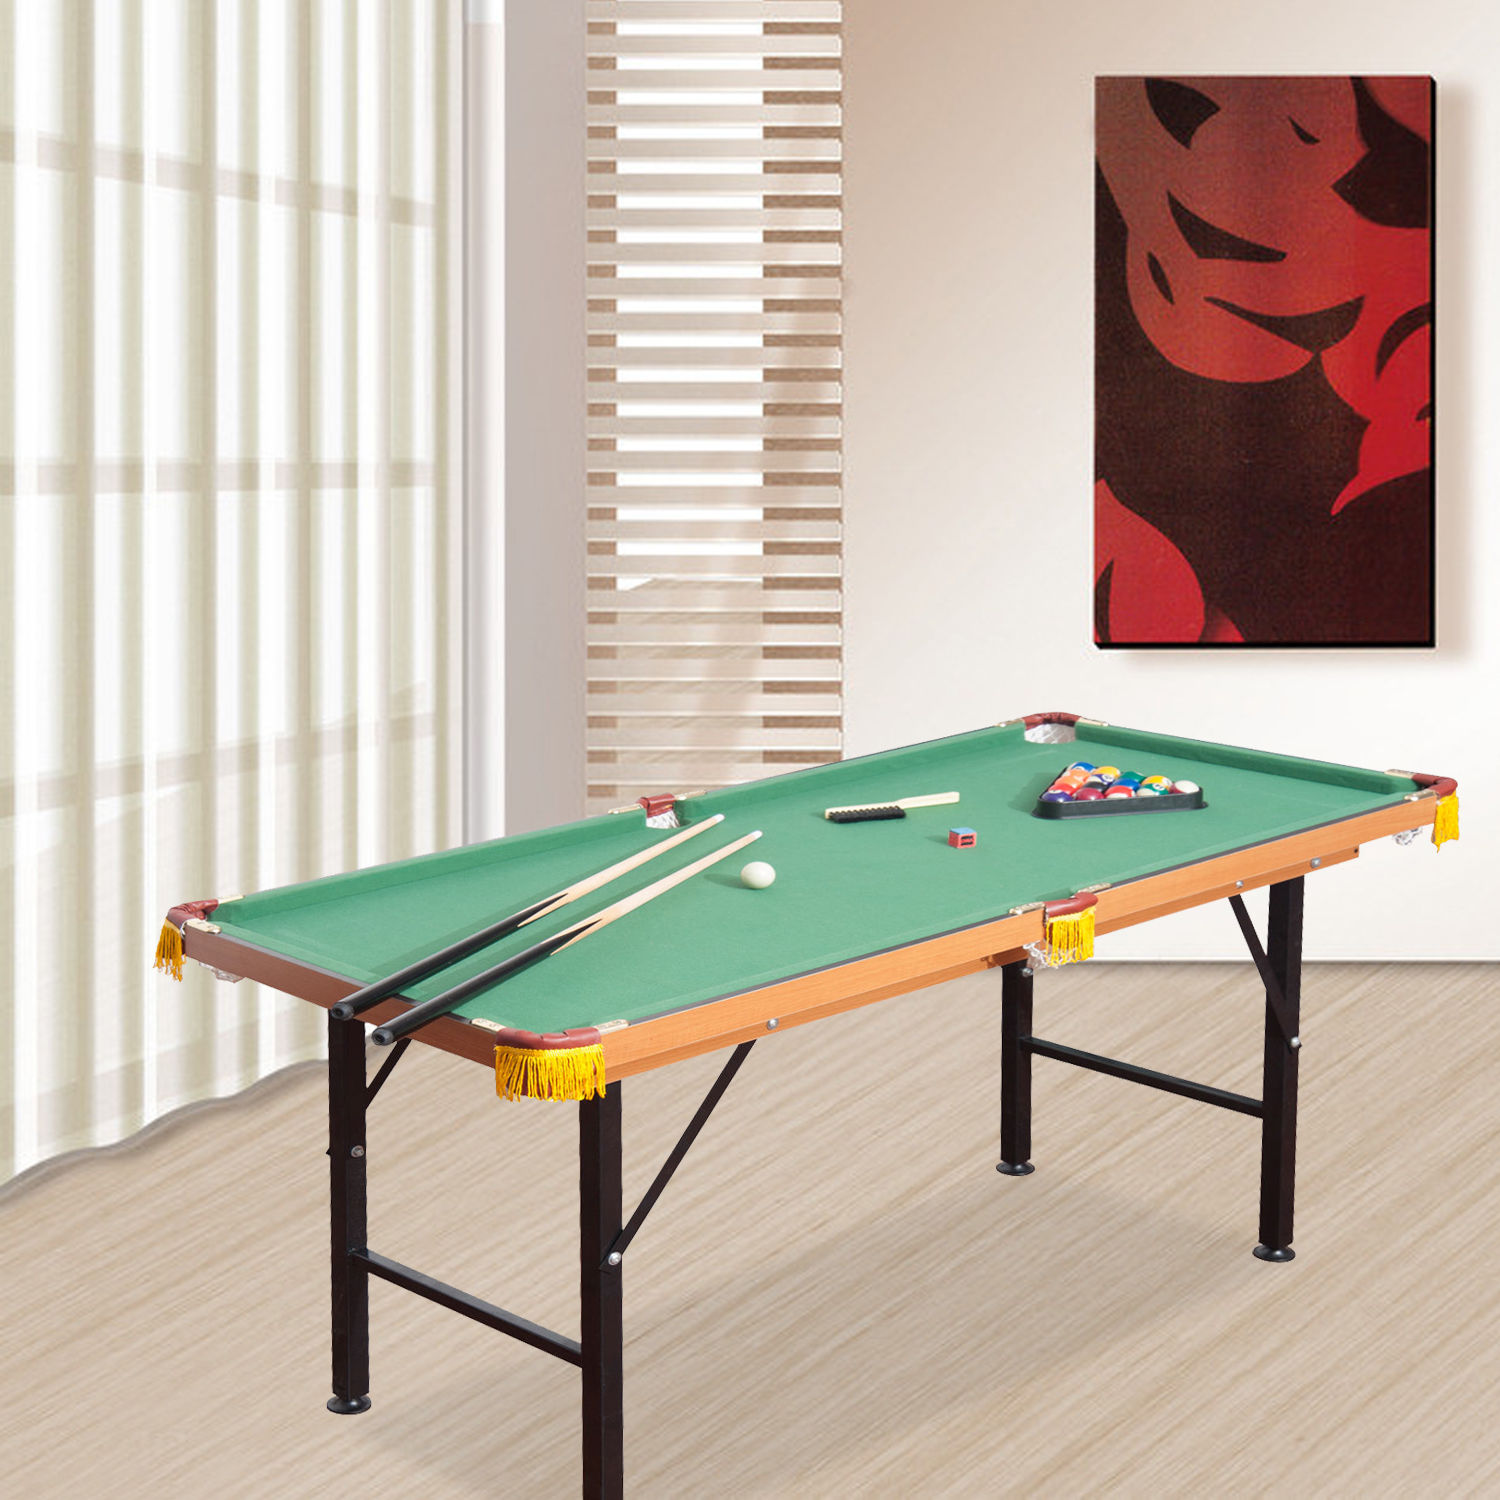 Mini Foldable Pool Table Portable Billiard Table With Cue Ball Sport Game Toy